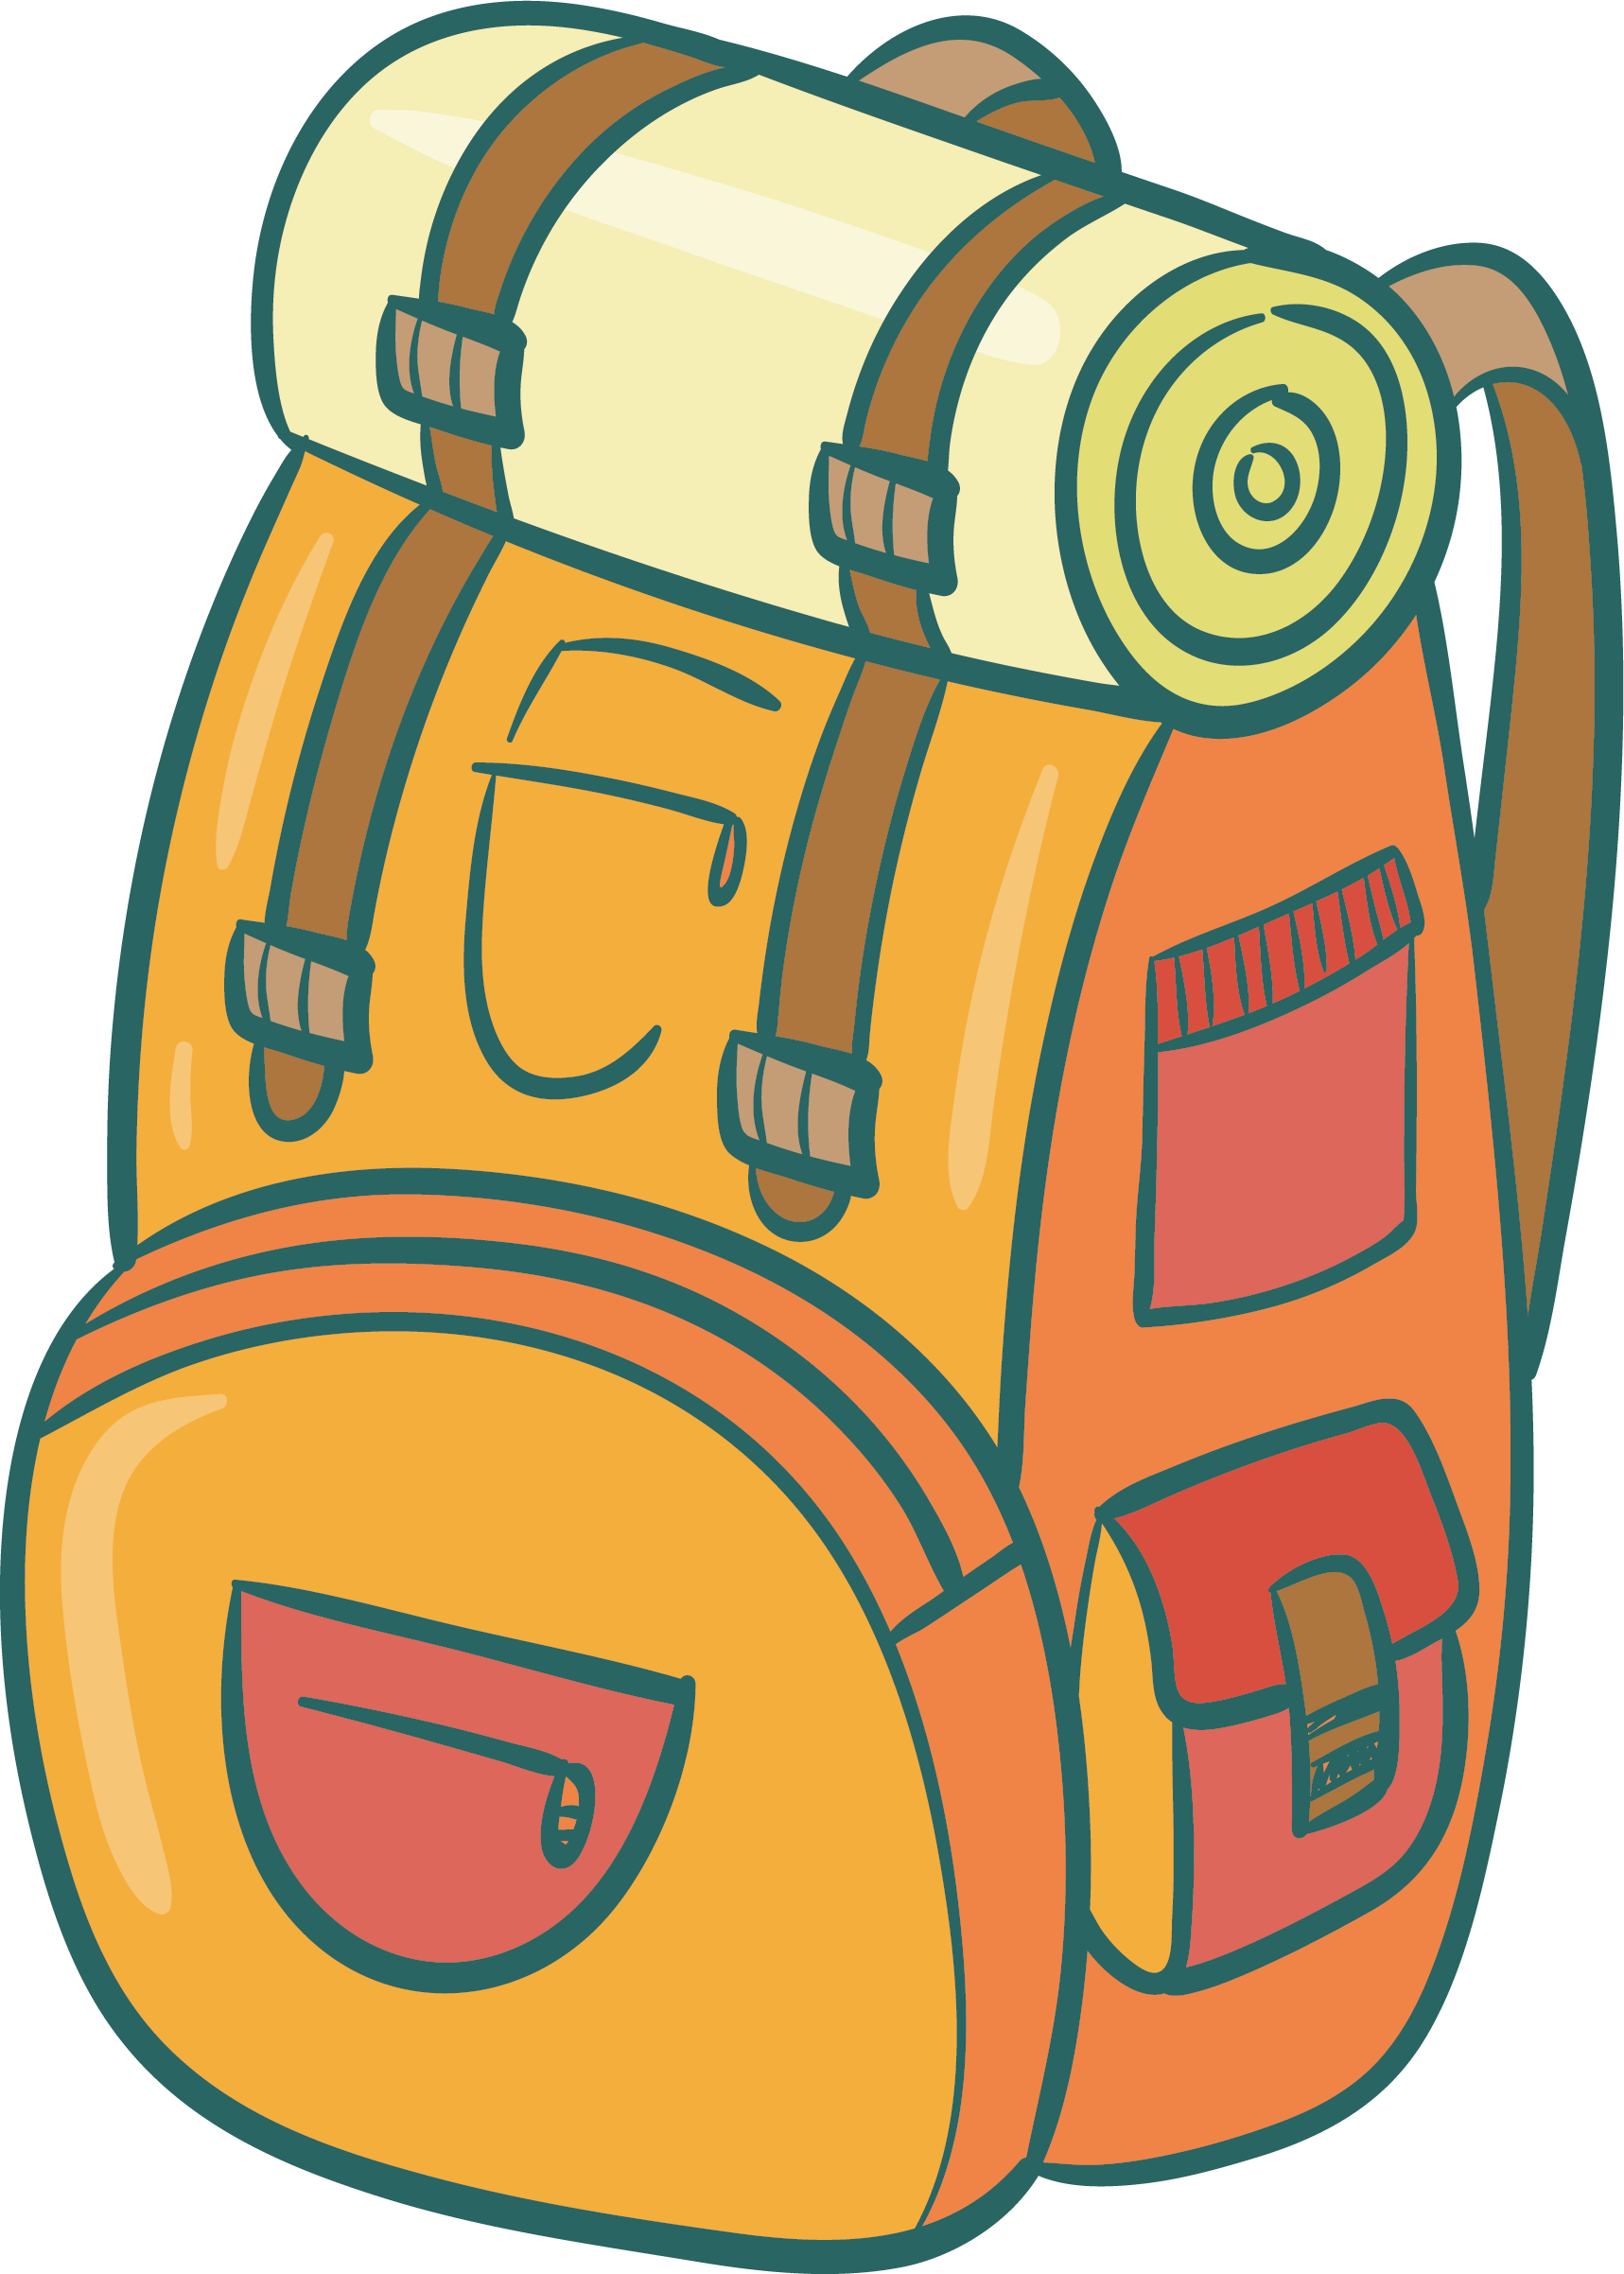 Backpack bag clip art. Luggage clipart world travel